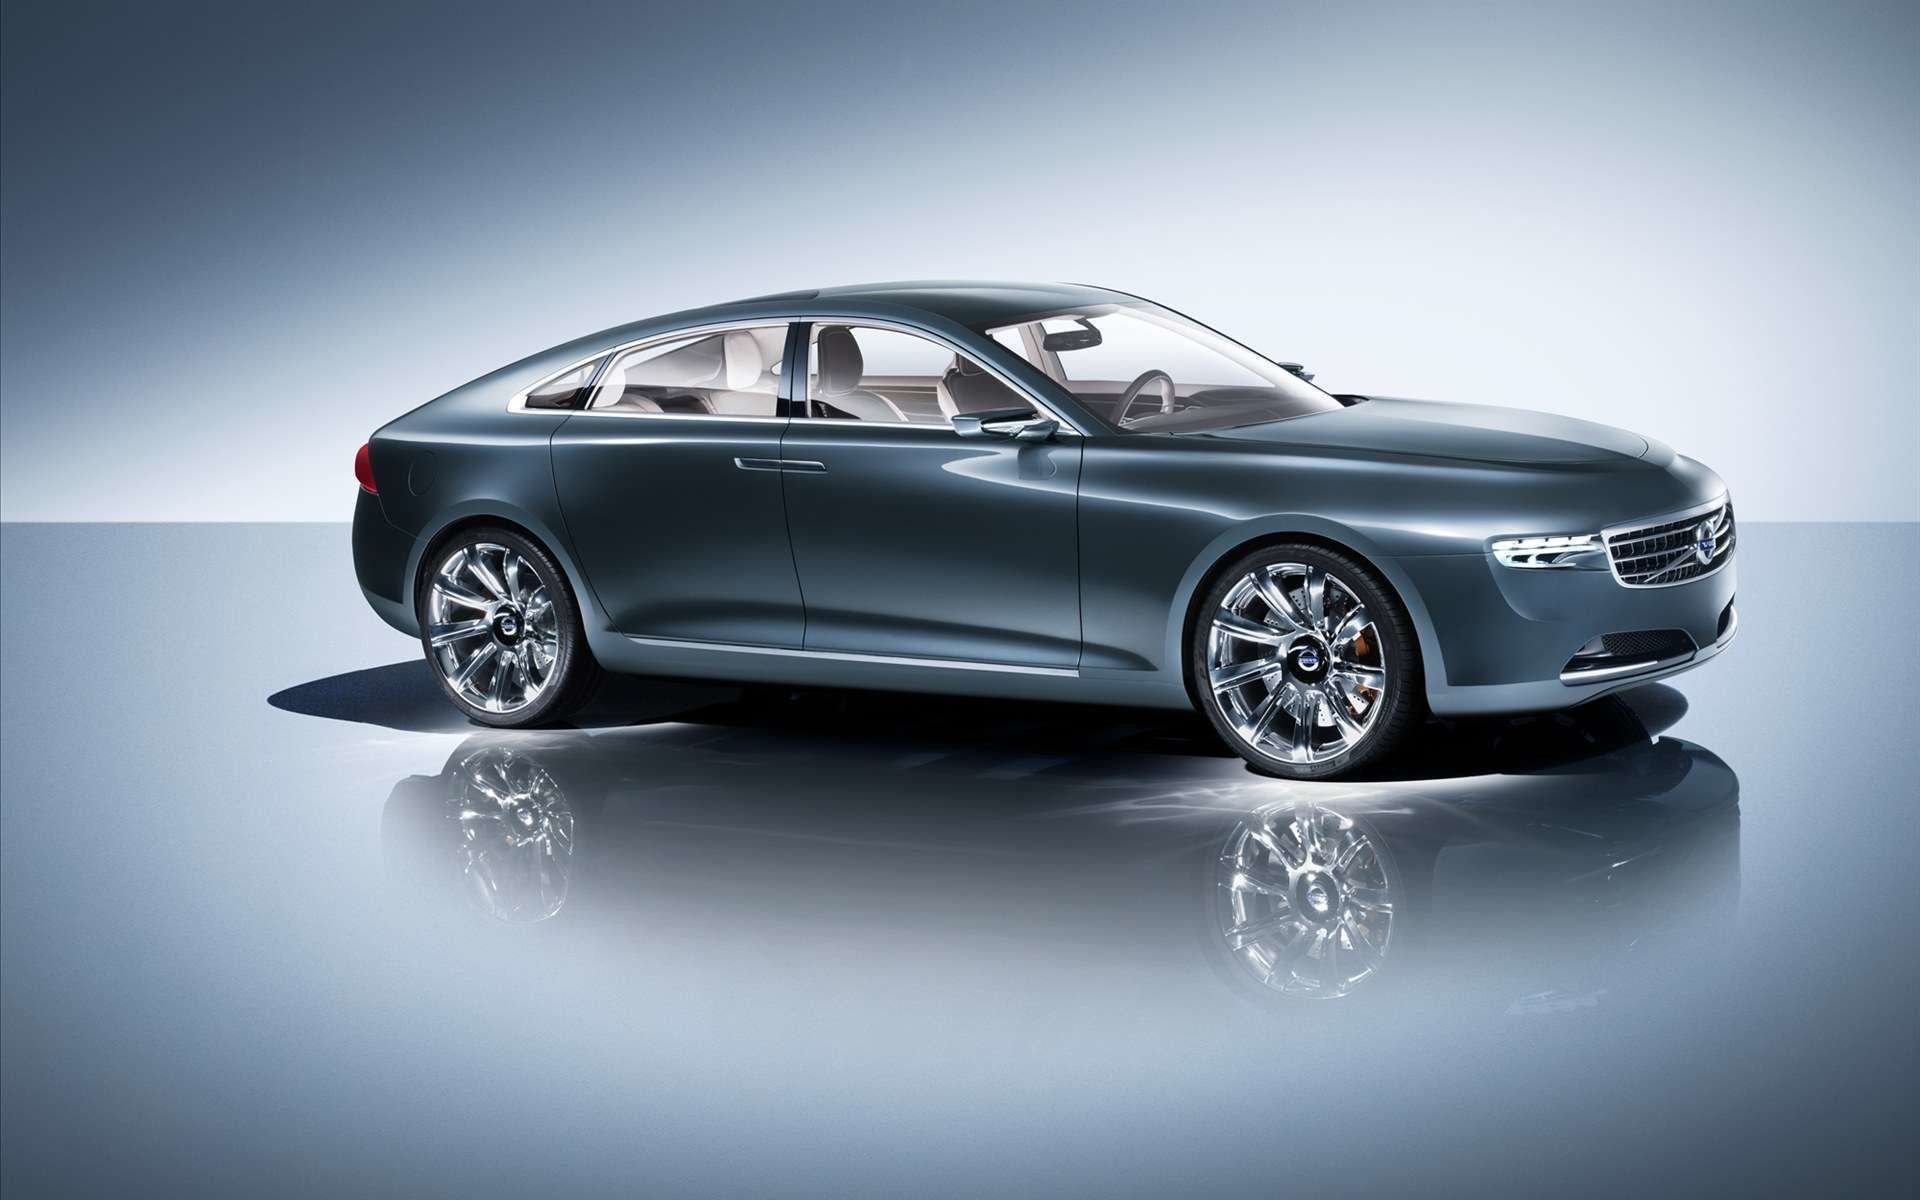 New 2011 Volvo You Concept 3 Hd Wallpapers Hd Car Wallpapers On This Month